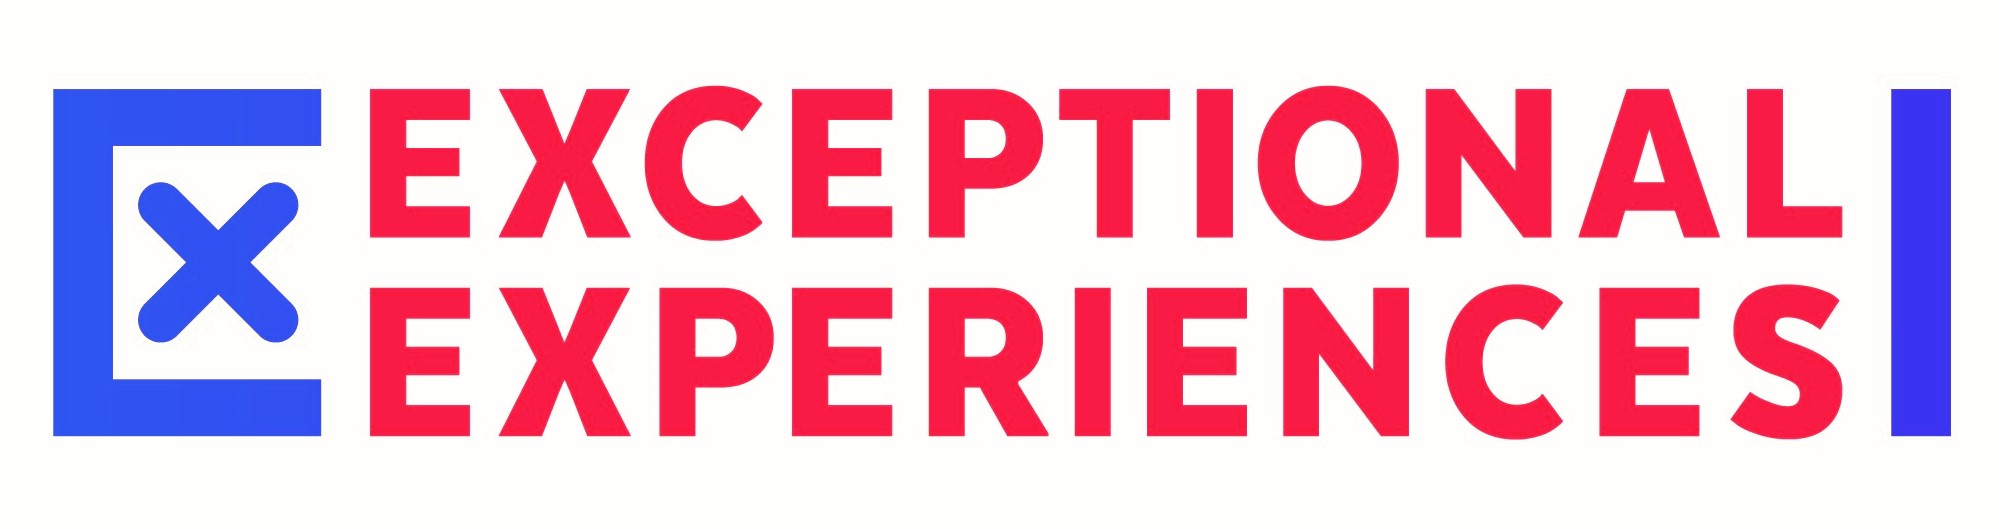 Exceptional Experiences